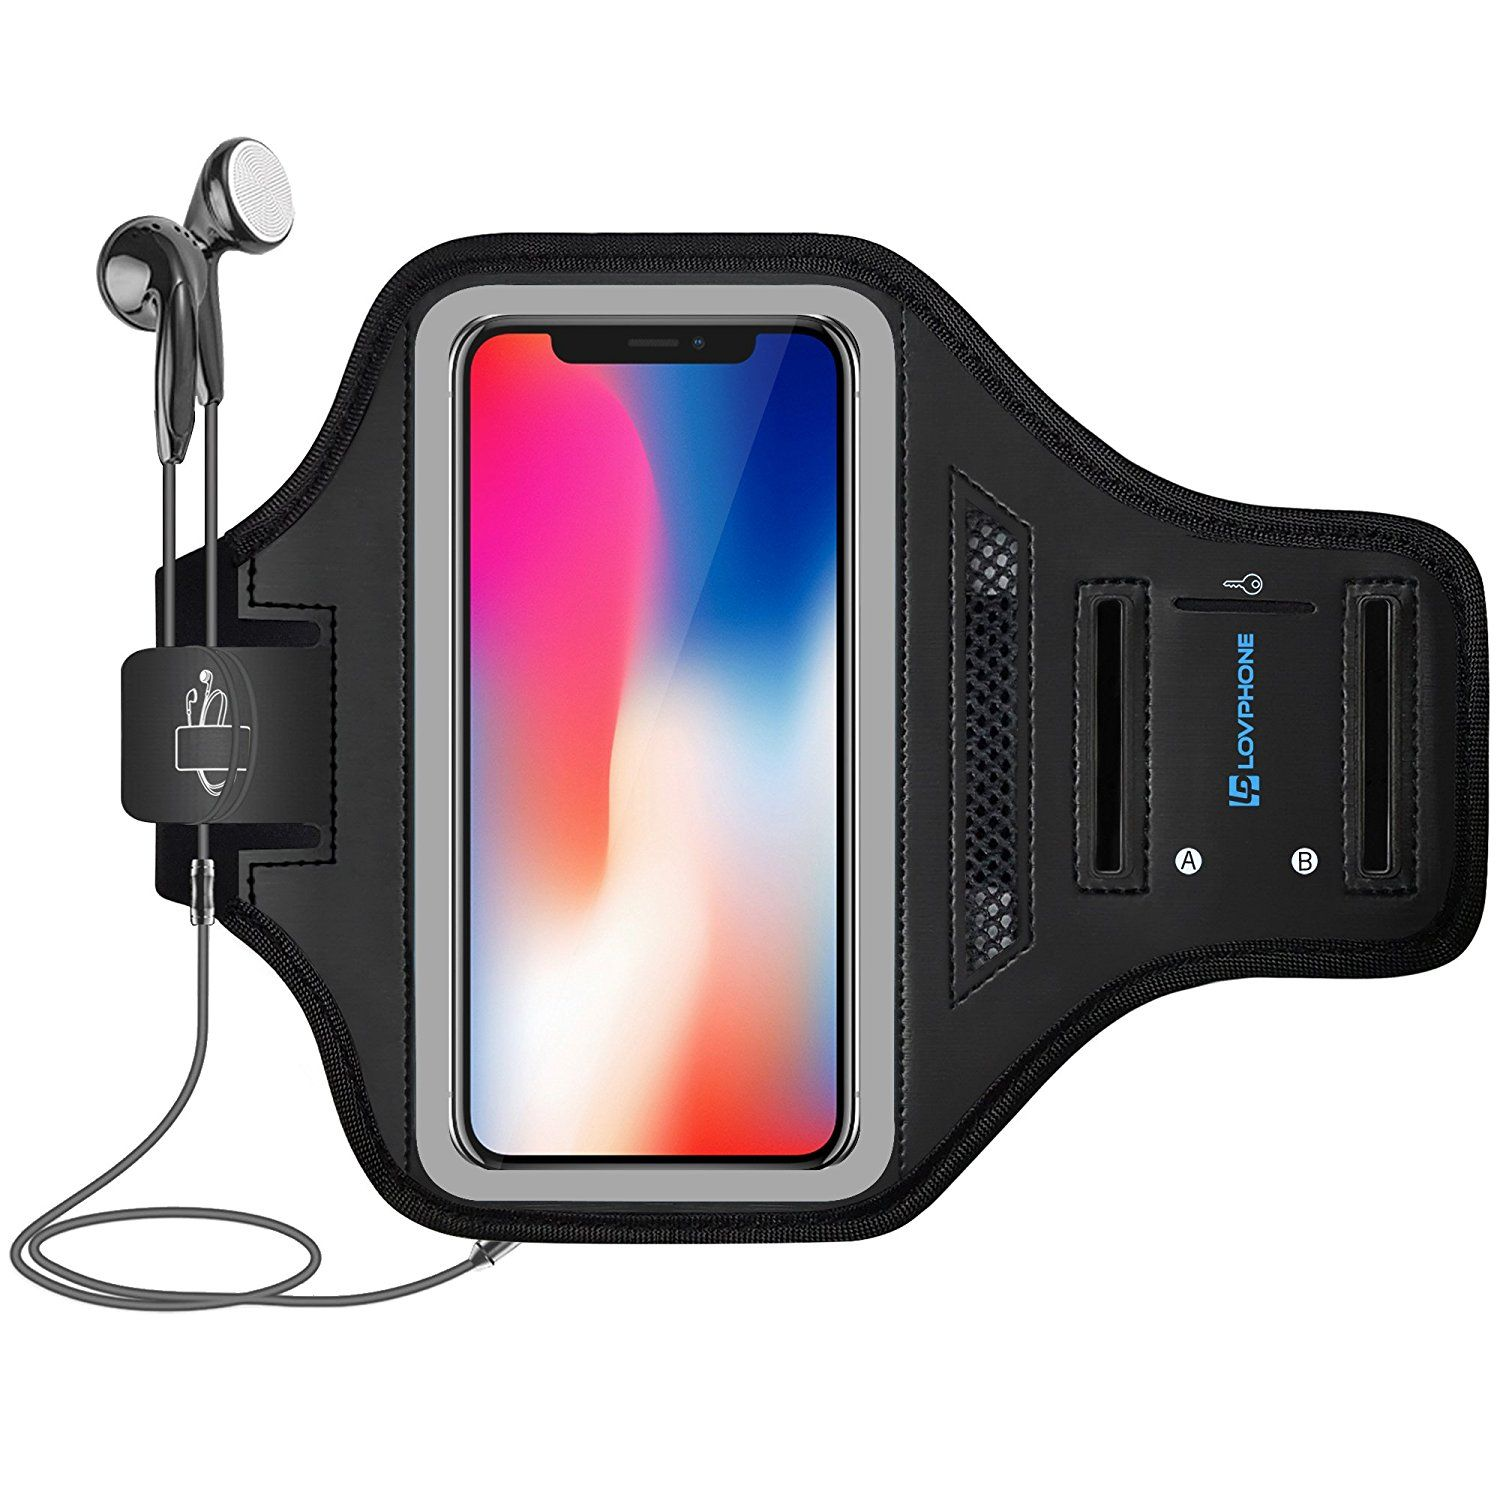 iphone xr water resistant test